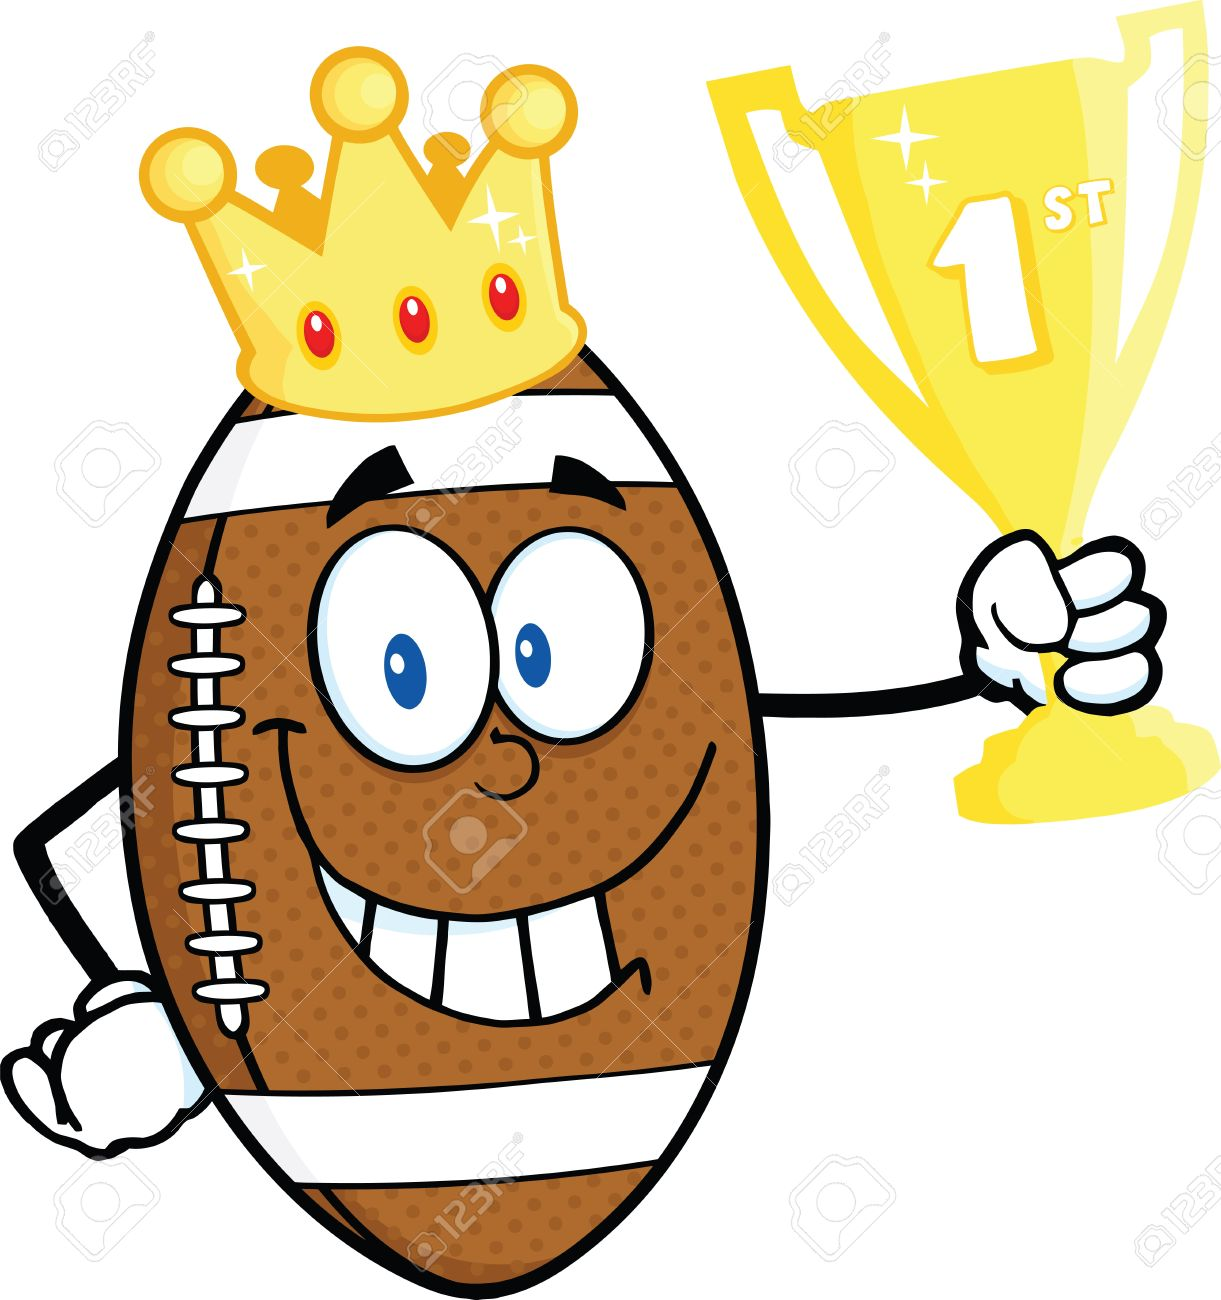 American Football Ball Character With Golden Crown Holding First.